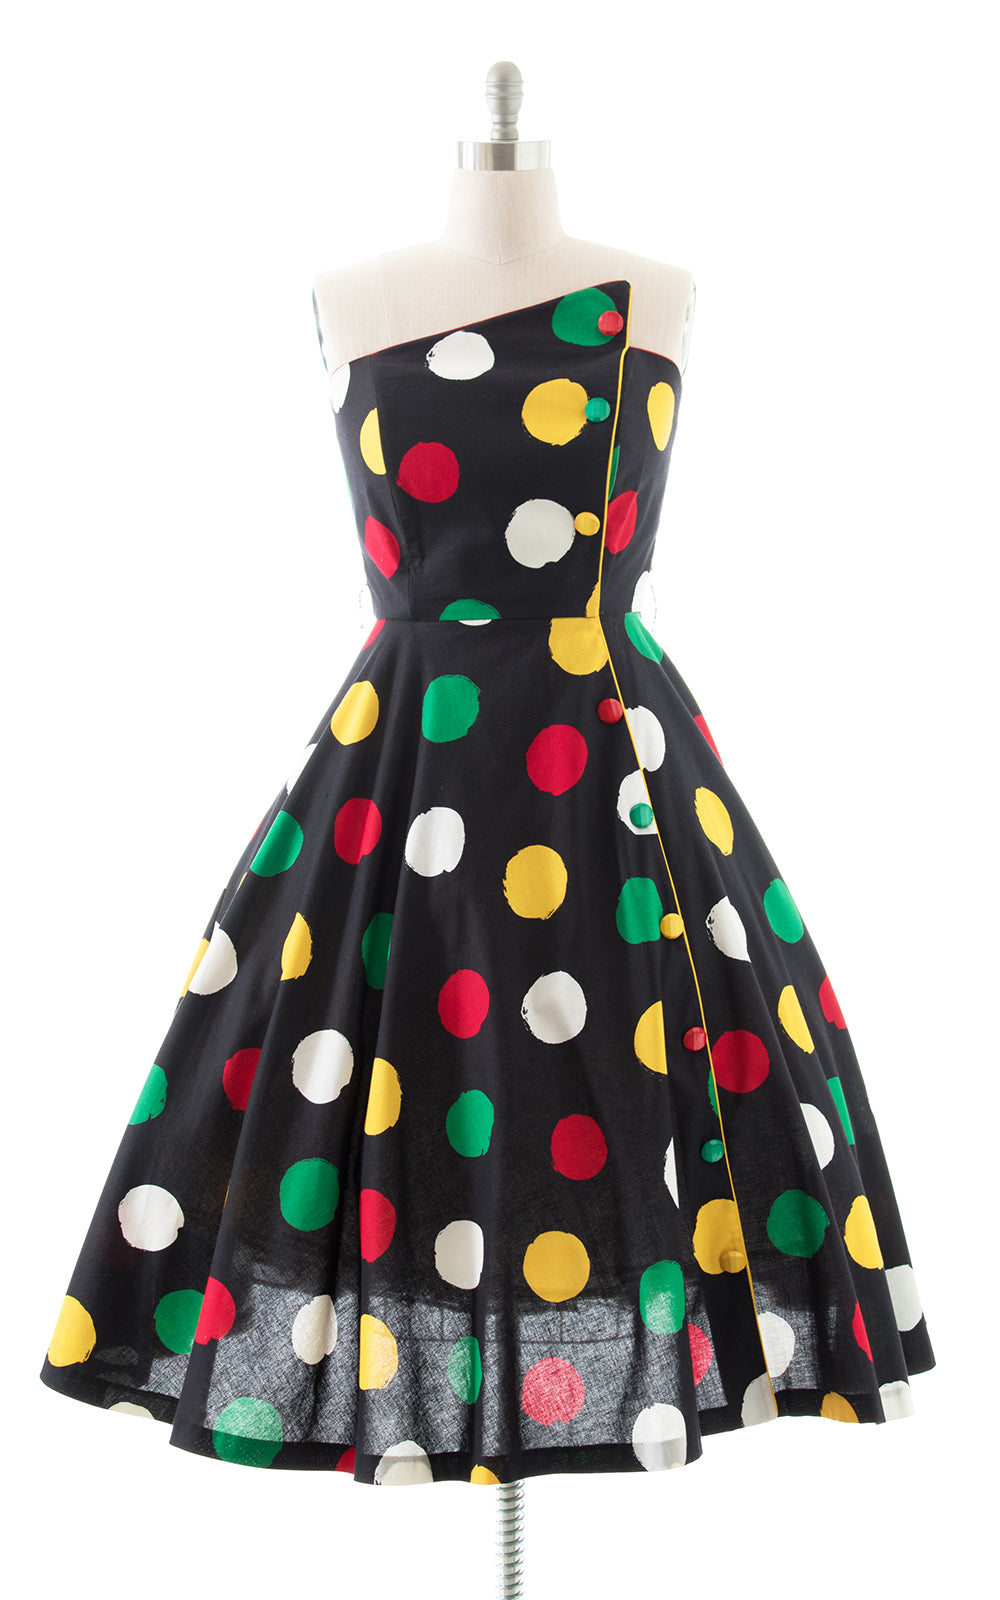 1980s Polka Dot Strapless Sundress with Pockets BirthdayLifeVintage